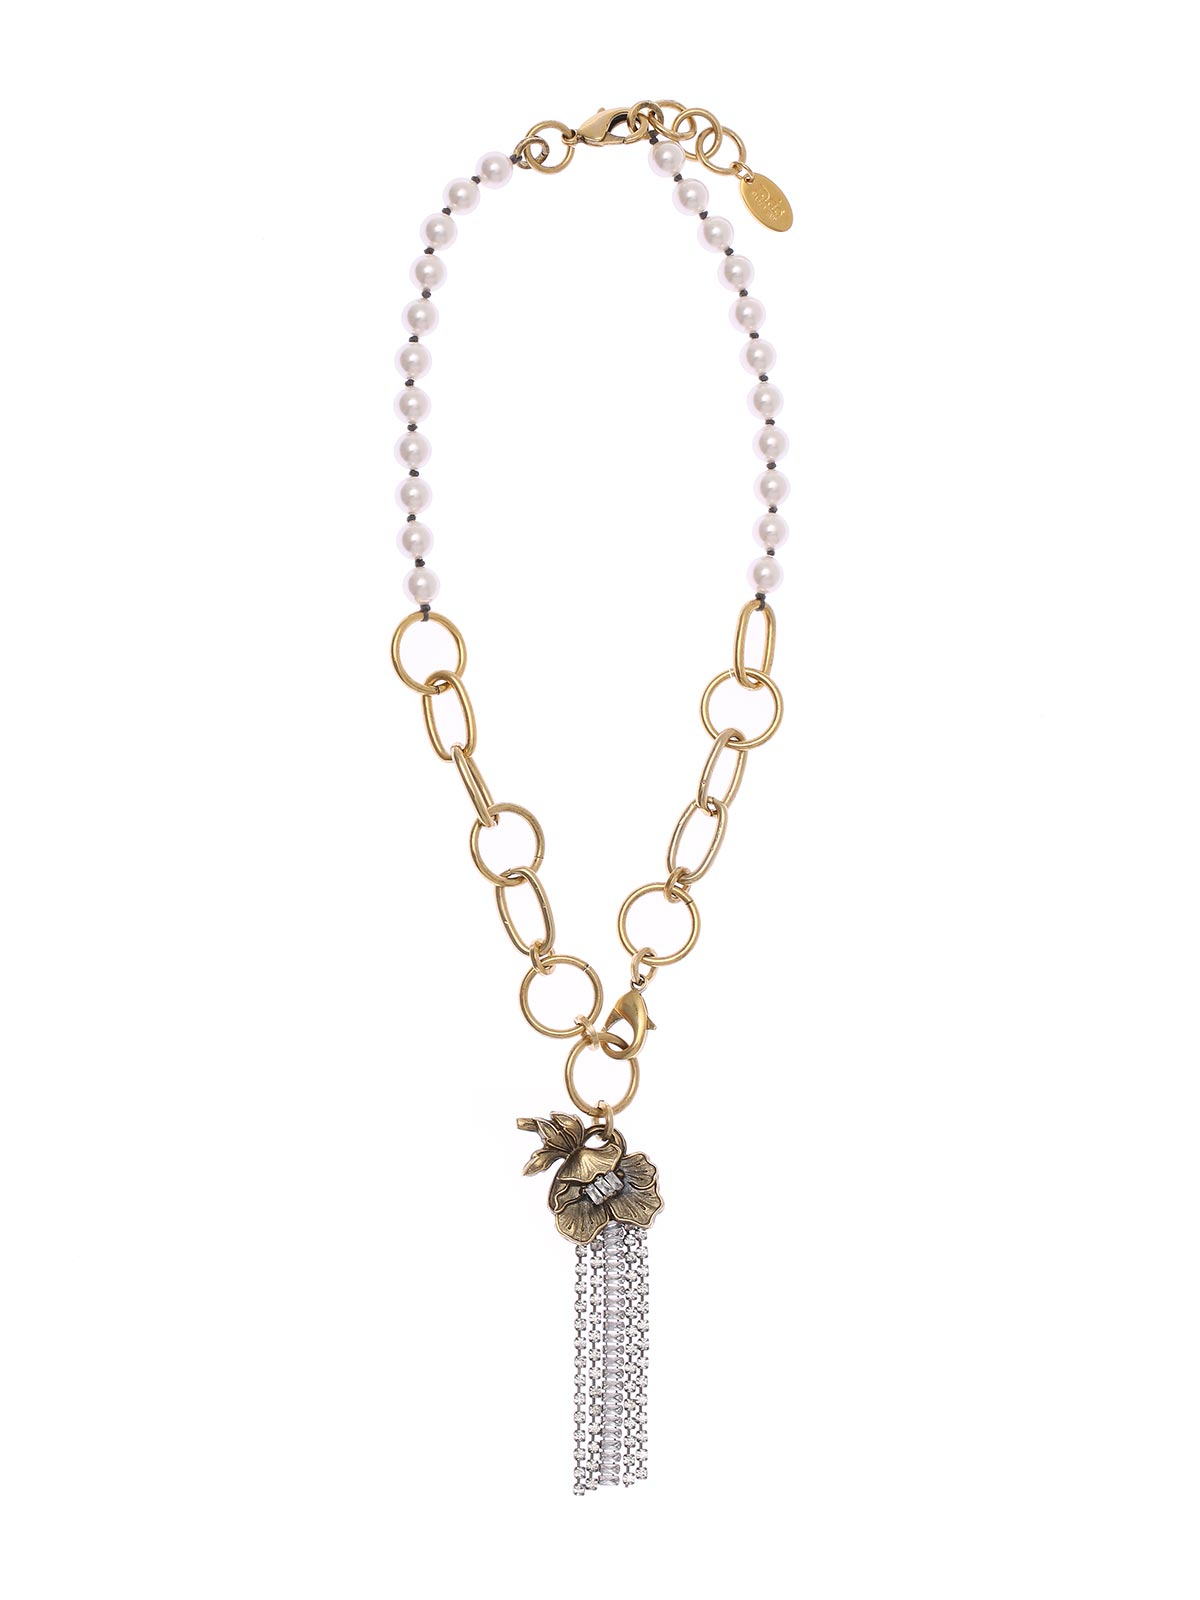 Mixed chain necklace with pearls and floral pendant